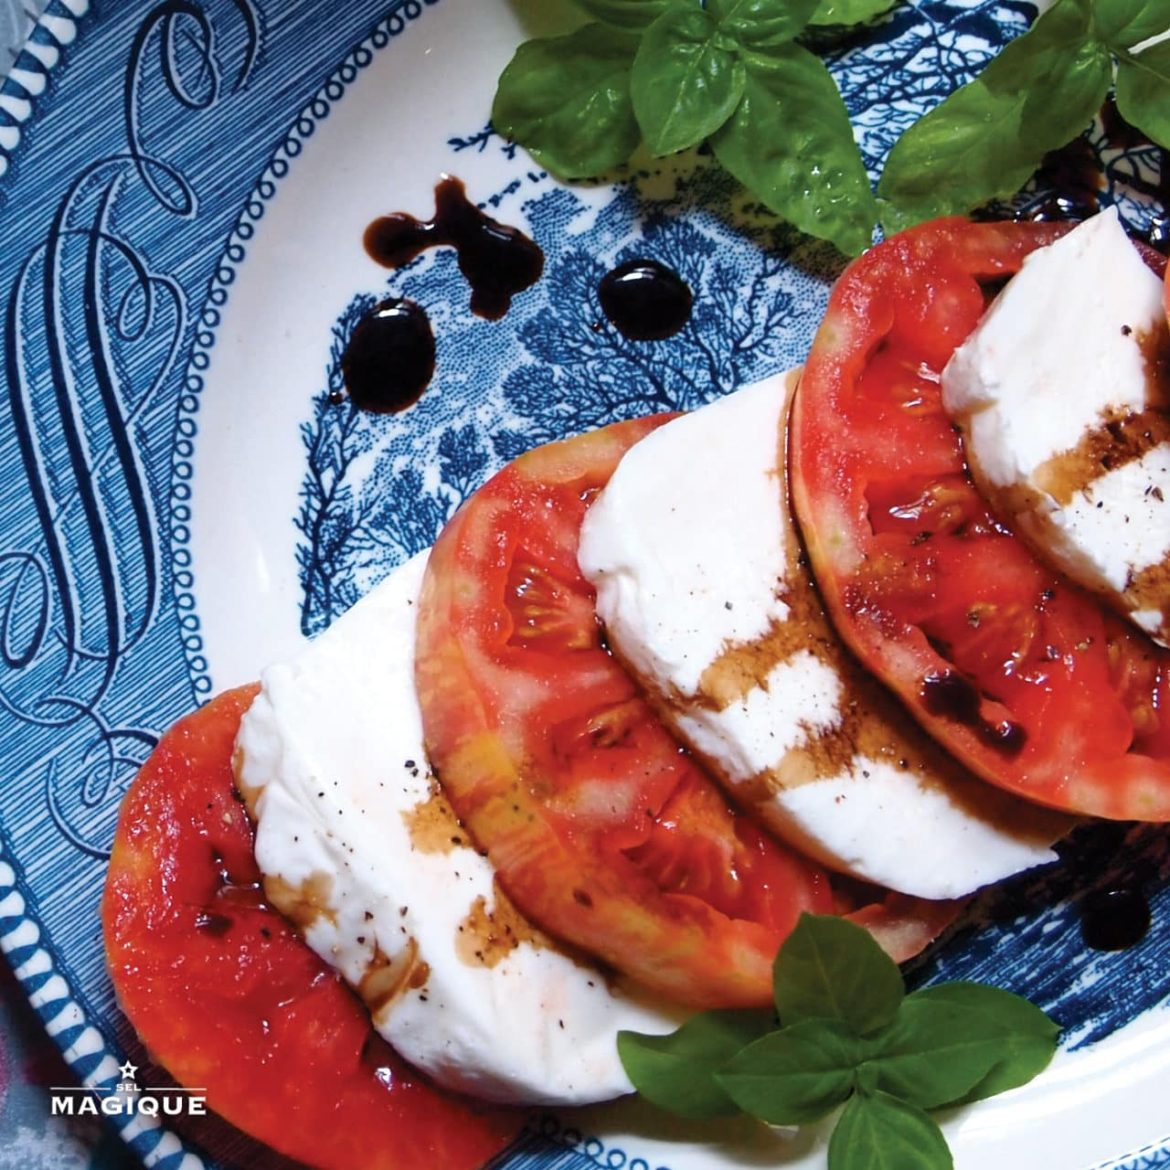 Heirloom Tomato & Buffalo Mozzarella Caprese